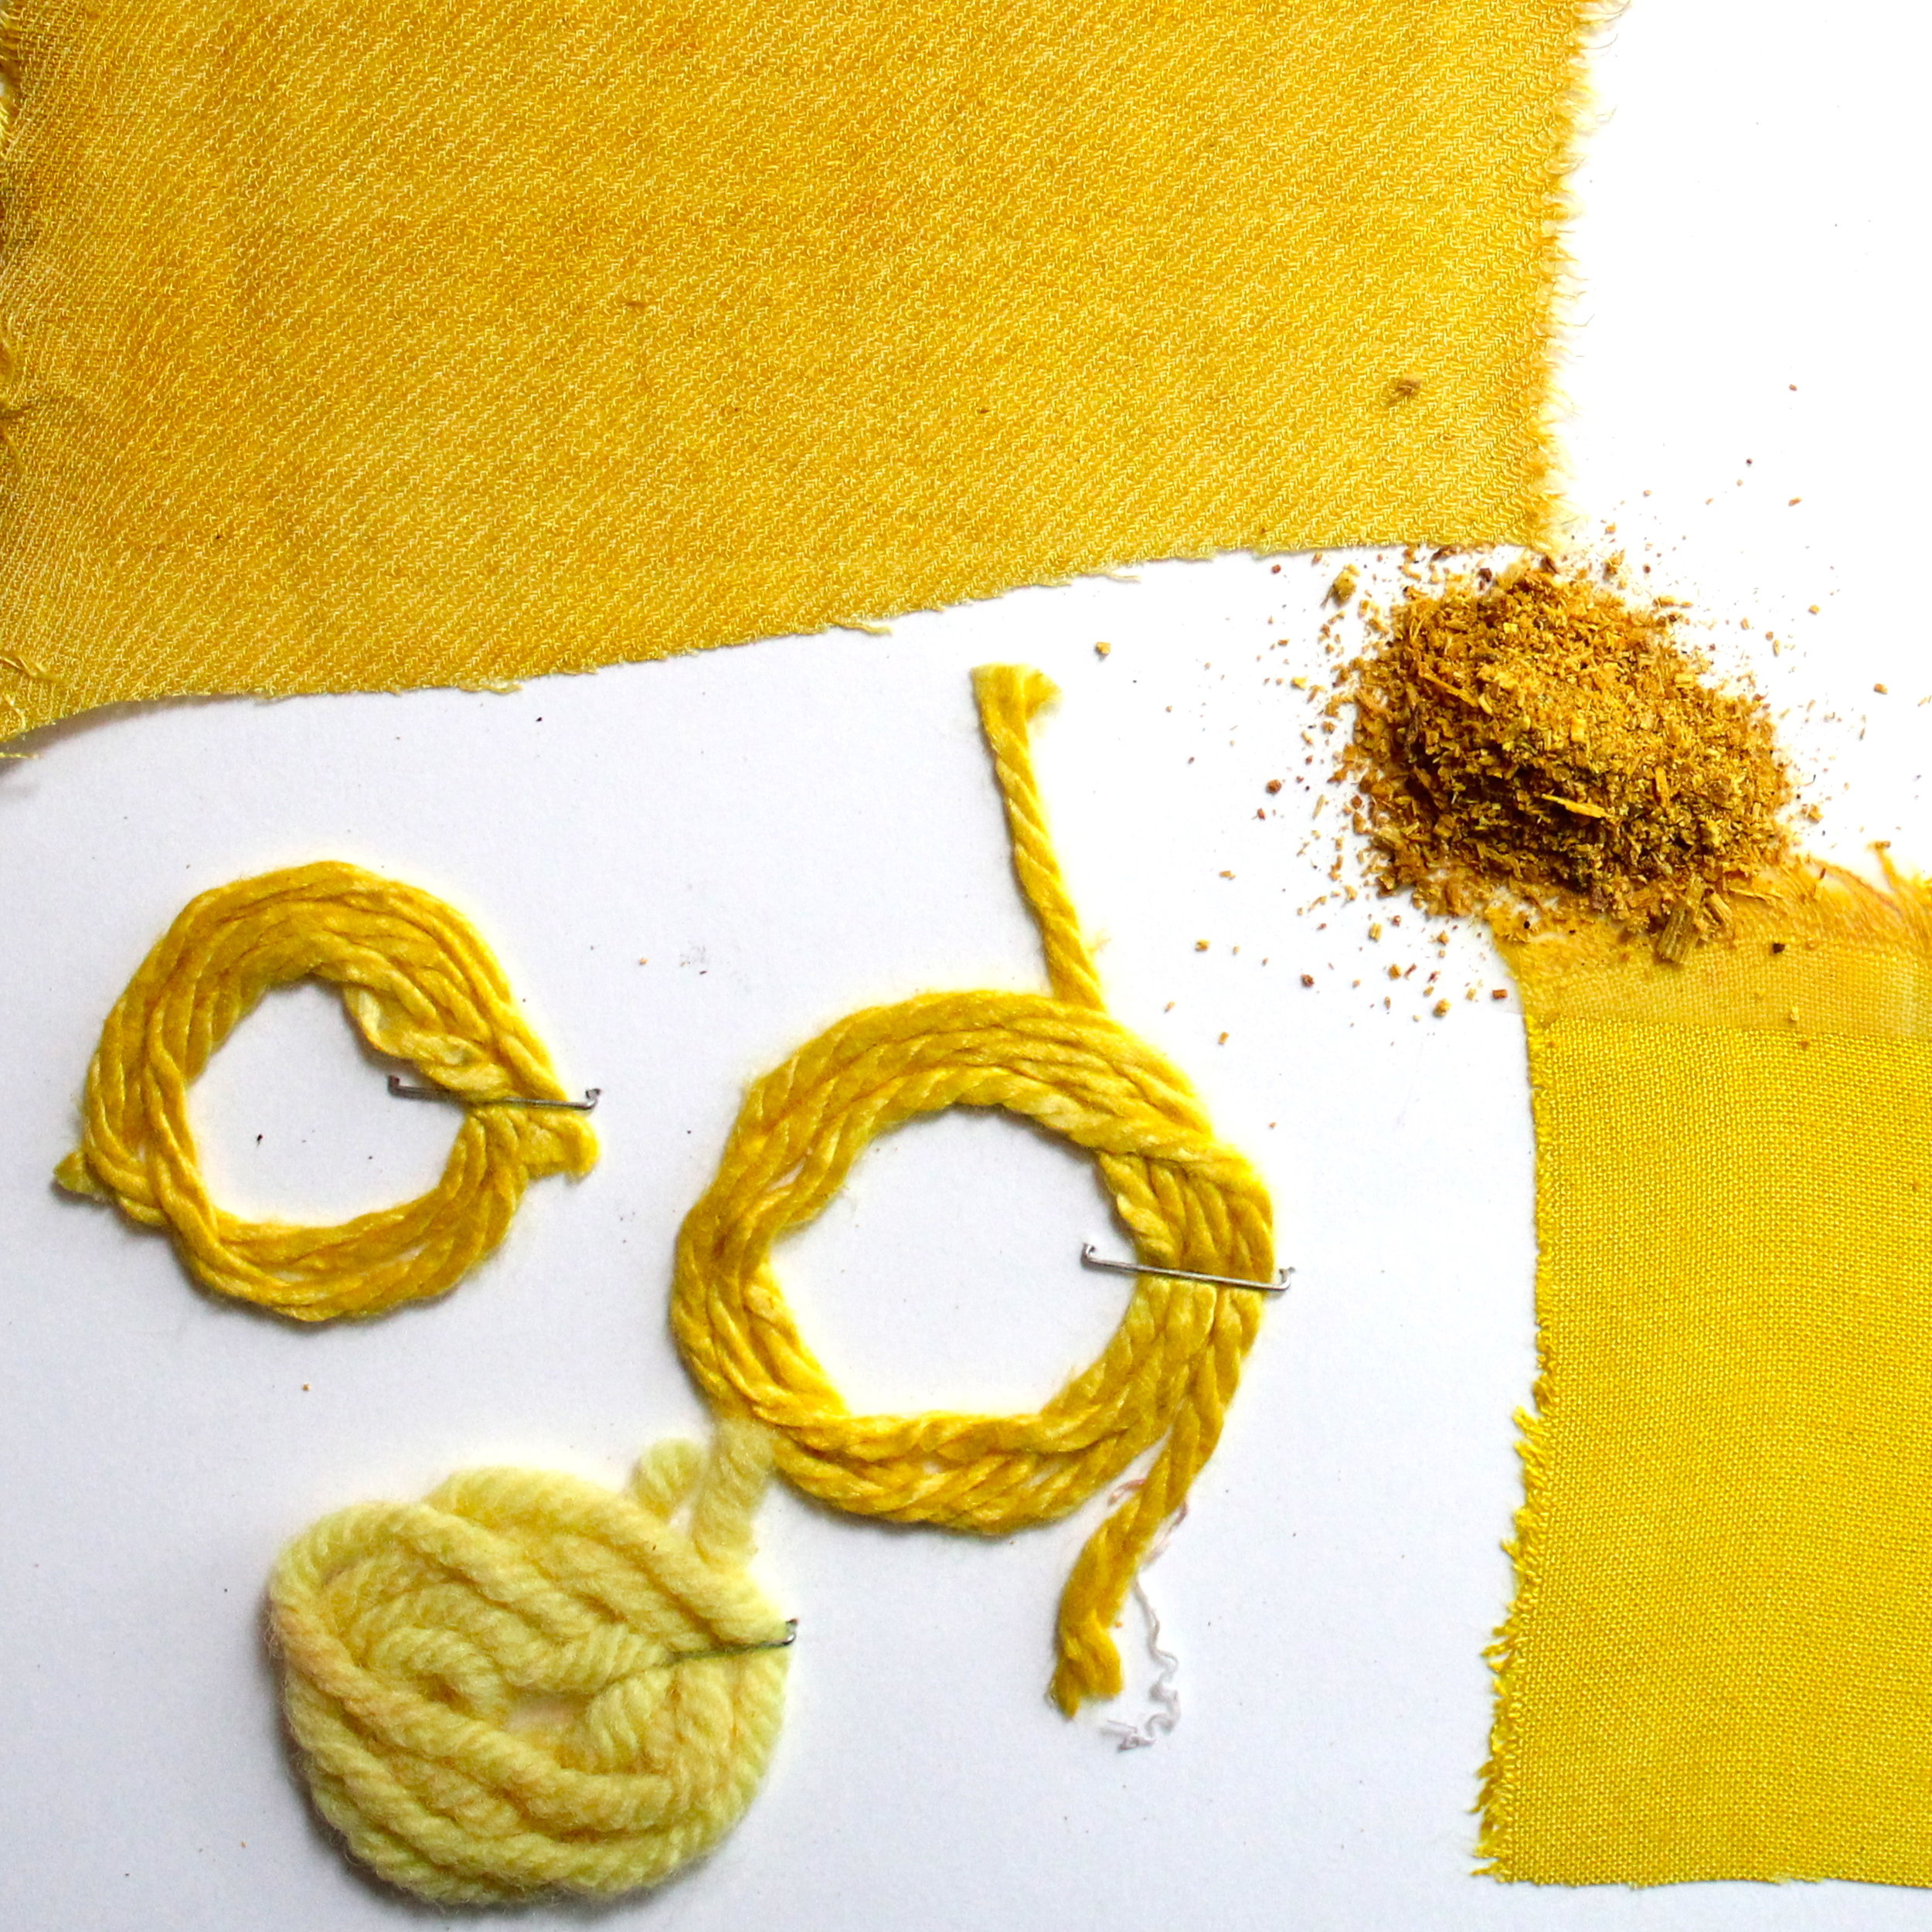 Osage  Osage dye comes from the heartwood of the Osage Orange tree. It is a lightfast sunny yellow dye.